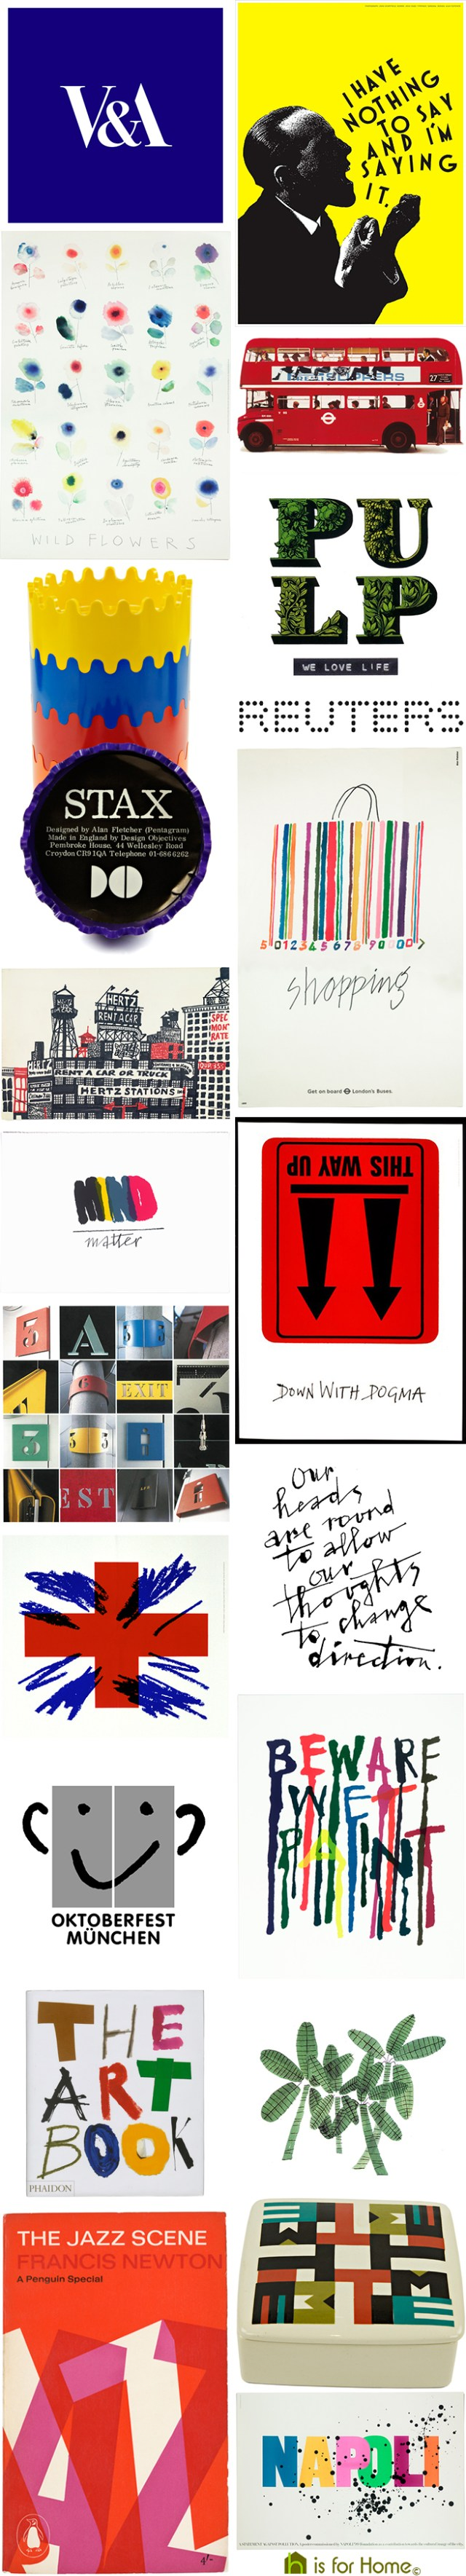 Mosaic of Alan Fletcher designs | H is for Home